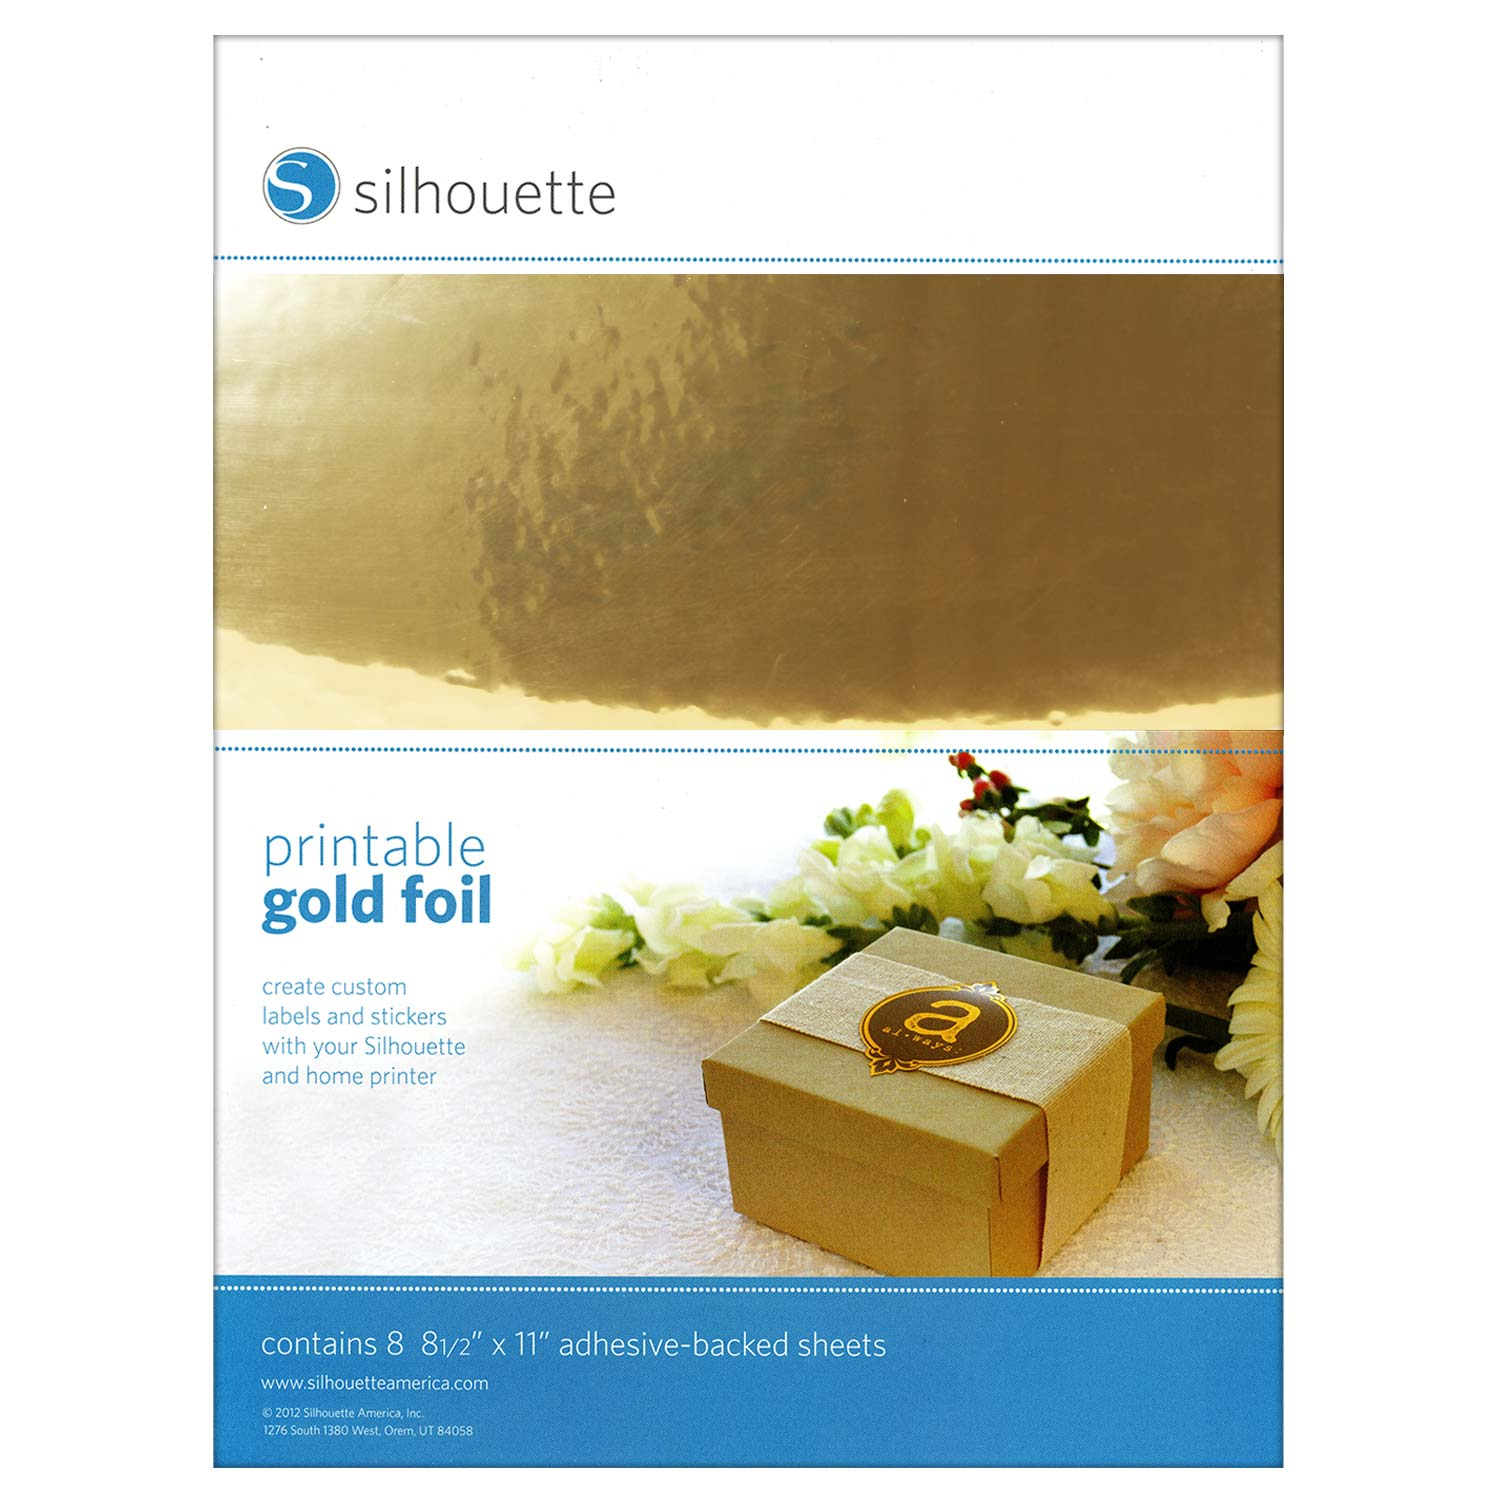 Silhouette Printable Gold Foil Gm Crafts